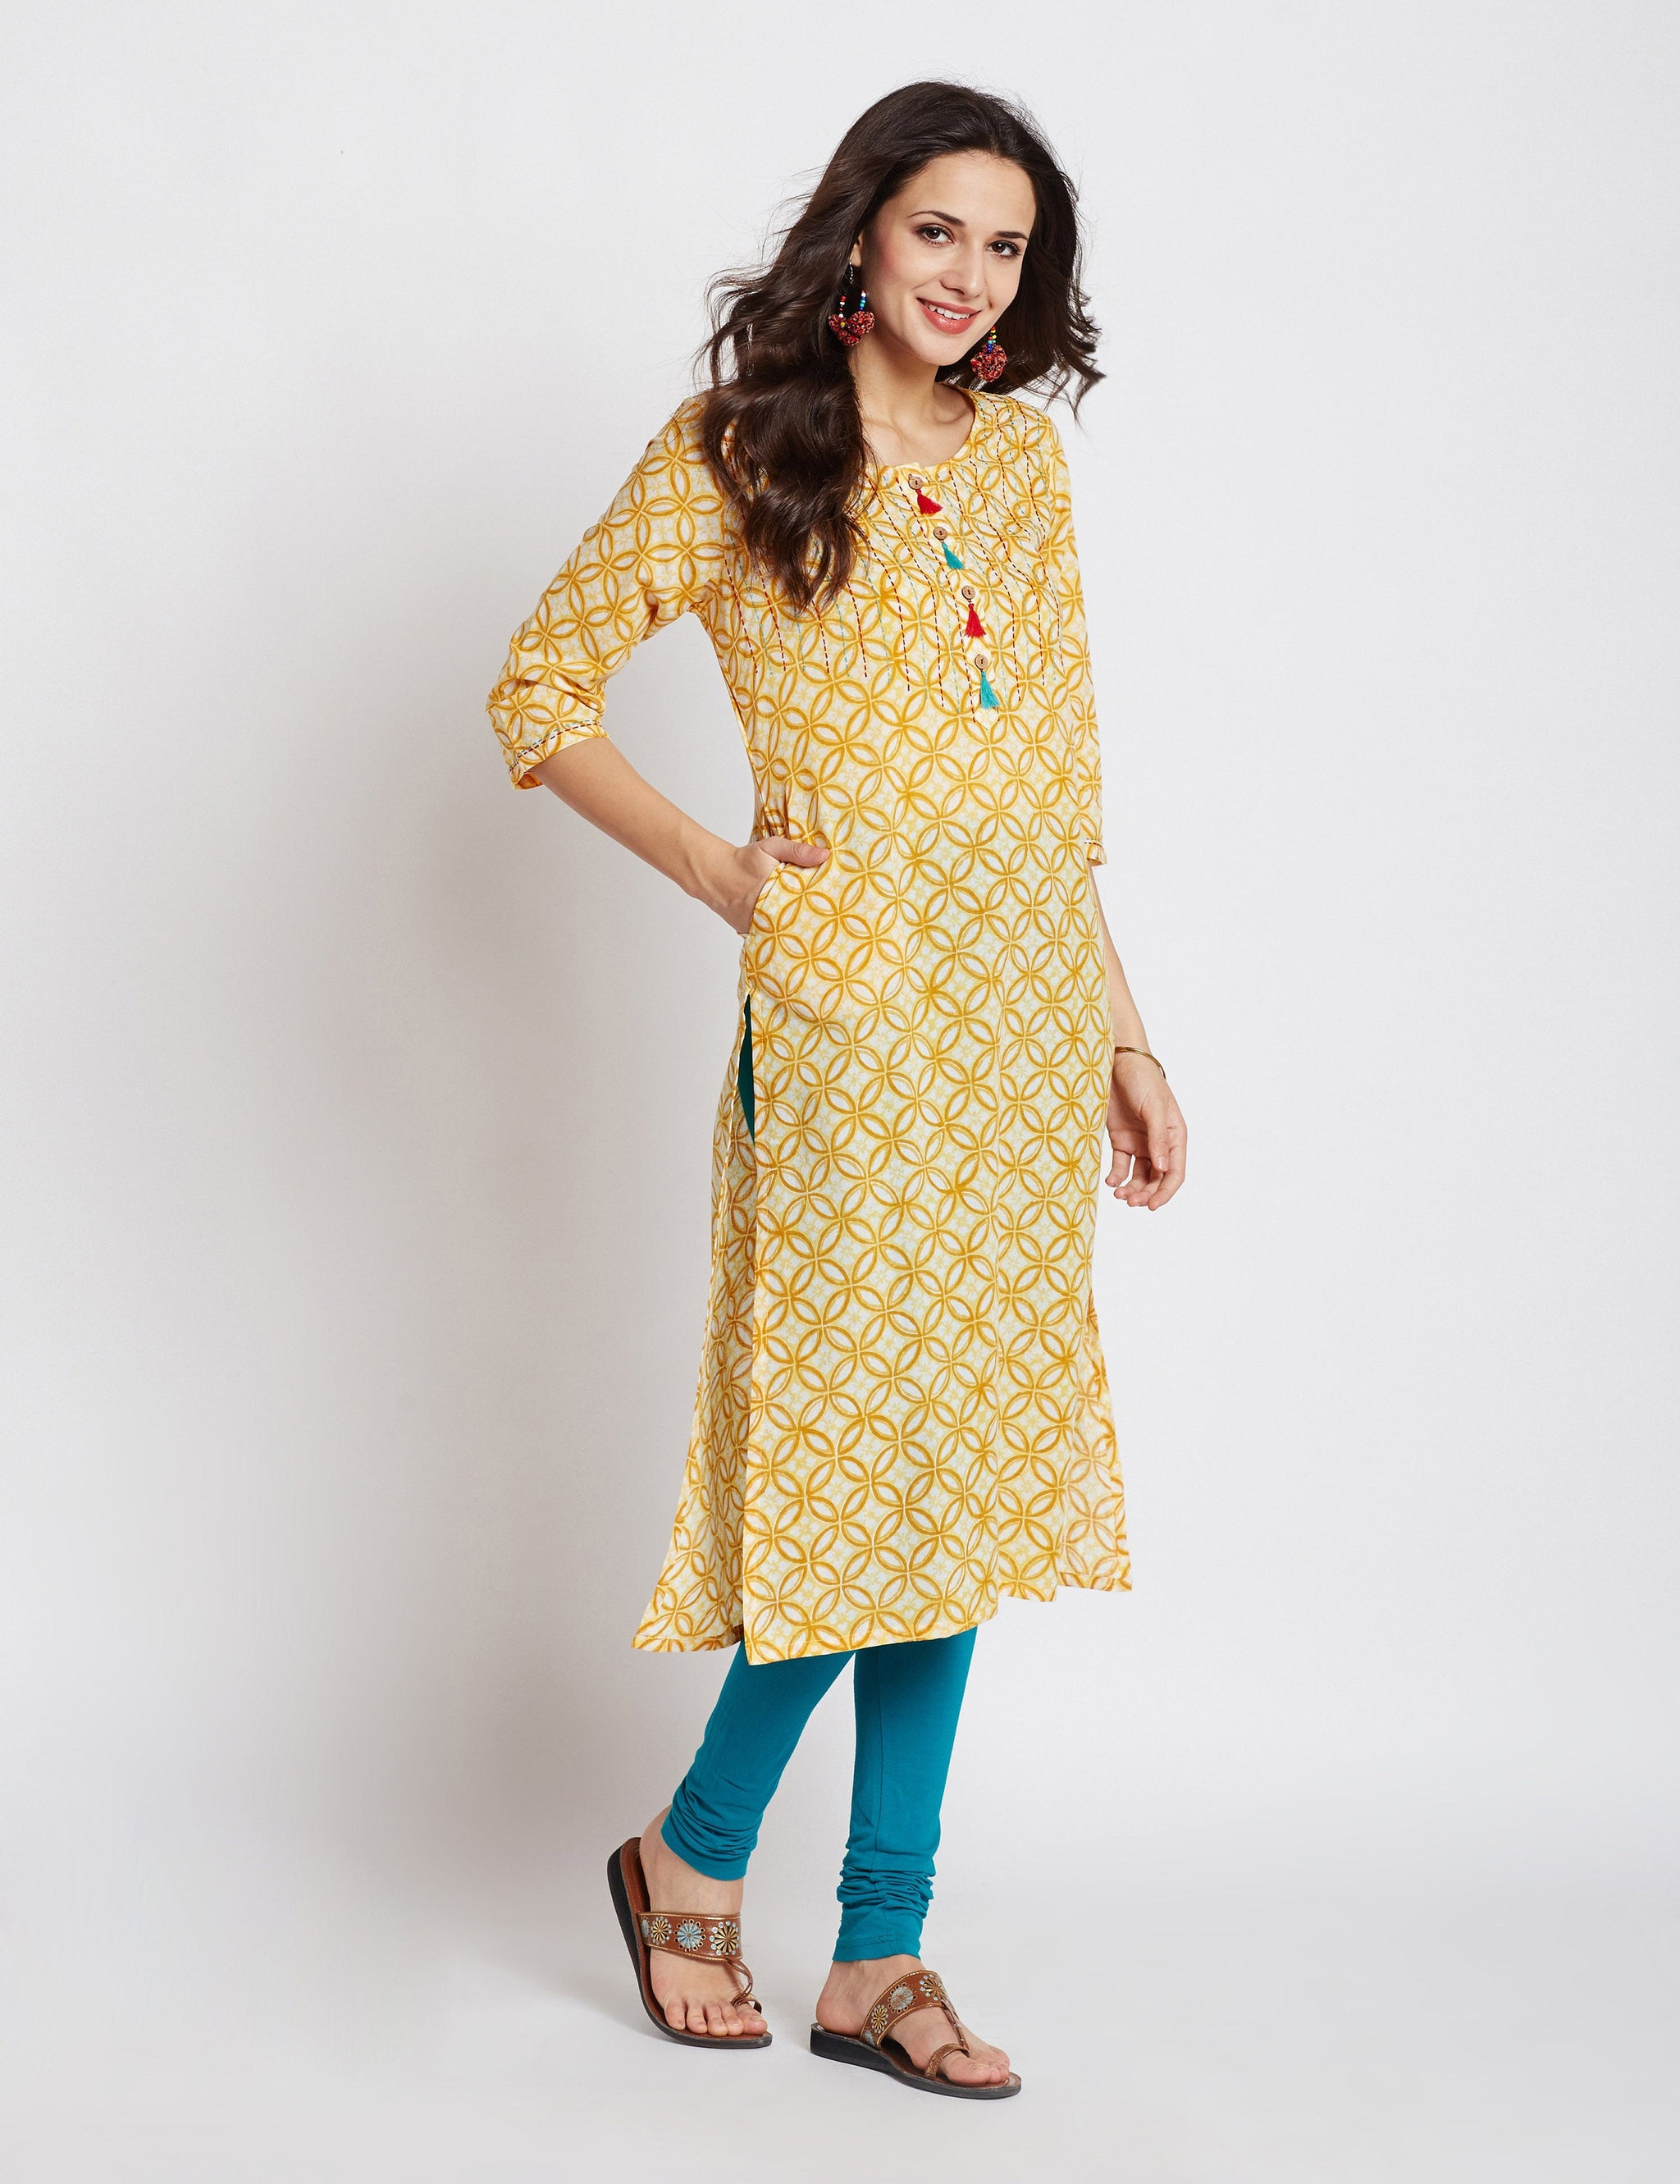 Hand block printed ethnic long Indian pocket kurta with kantha hand embroidery & tassels on front placket